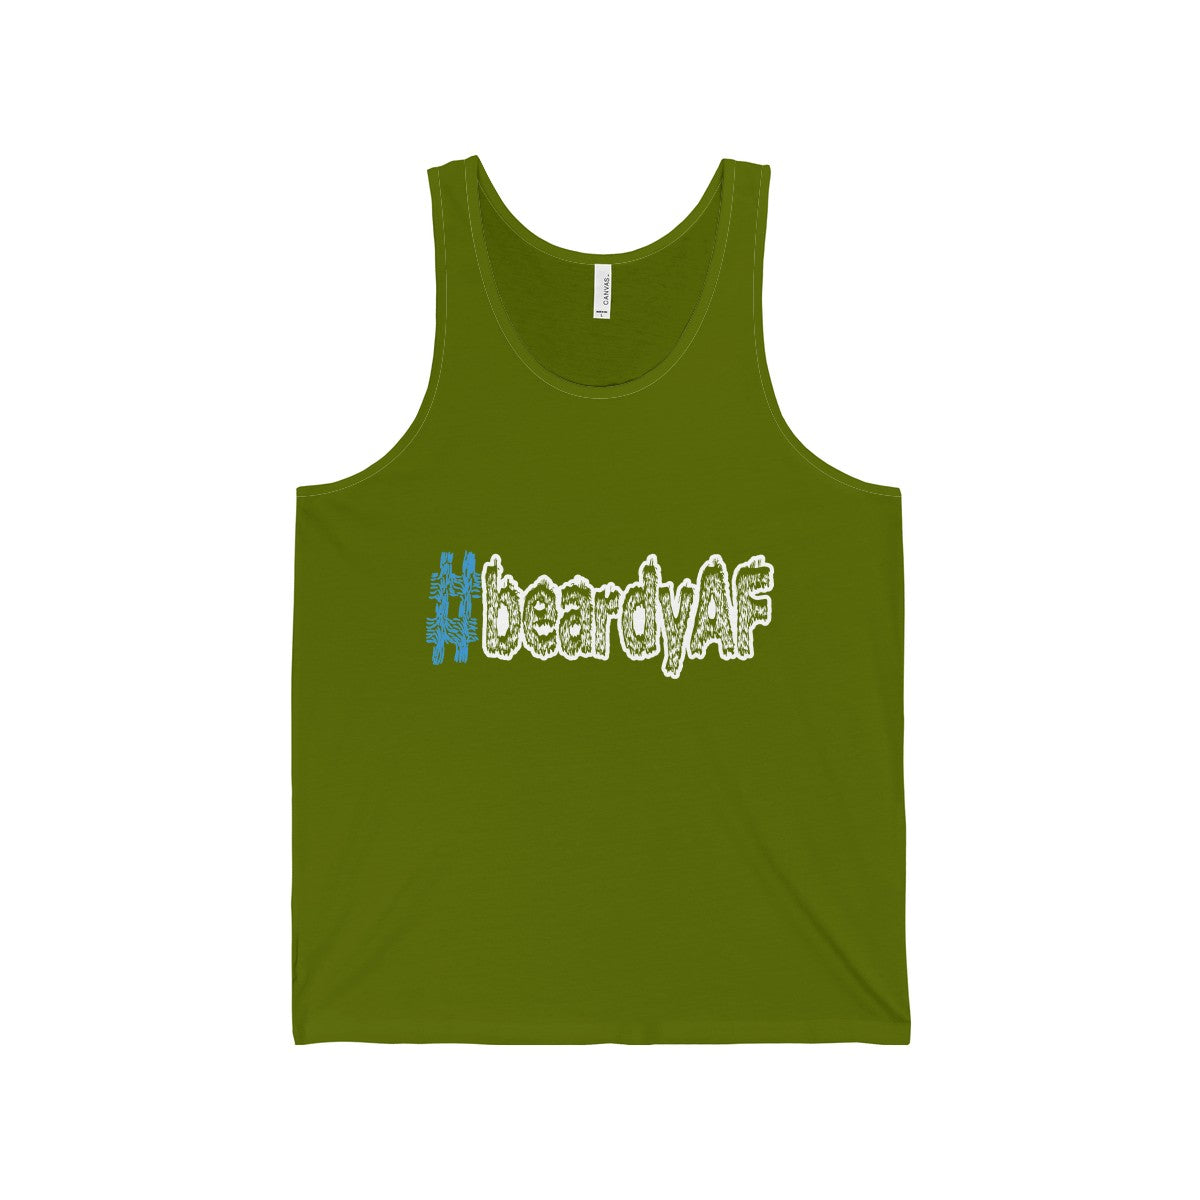 beardyAF hashtag #beardyAF men's unisex tank top Nerdedness